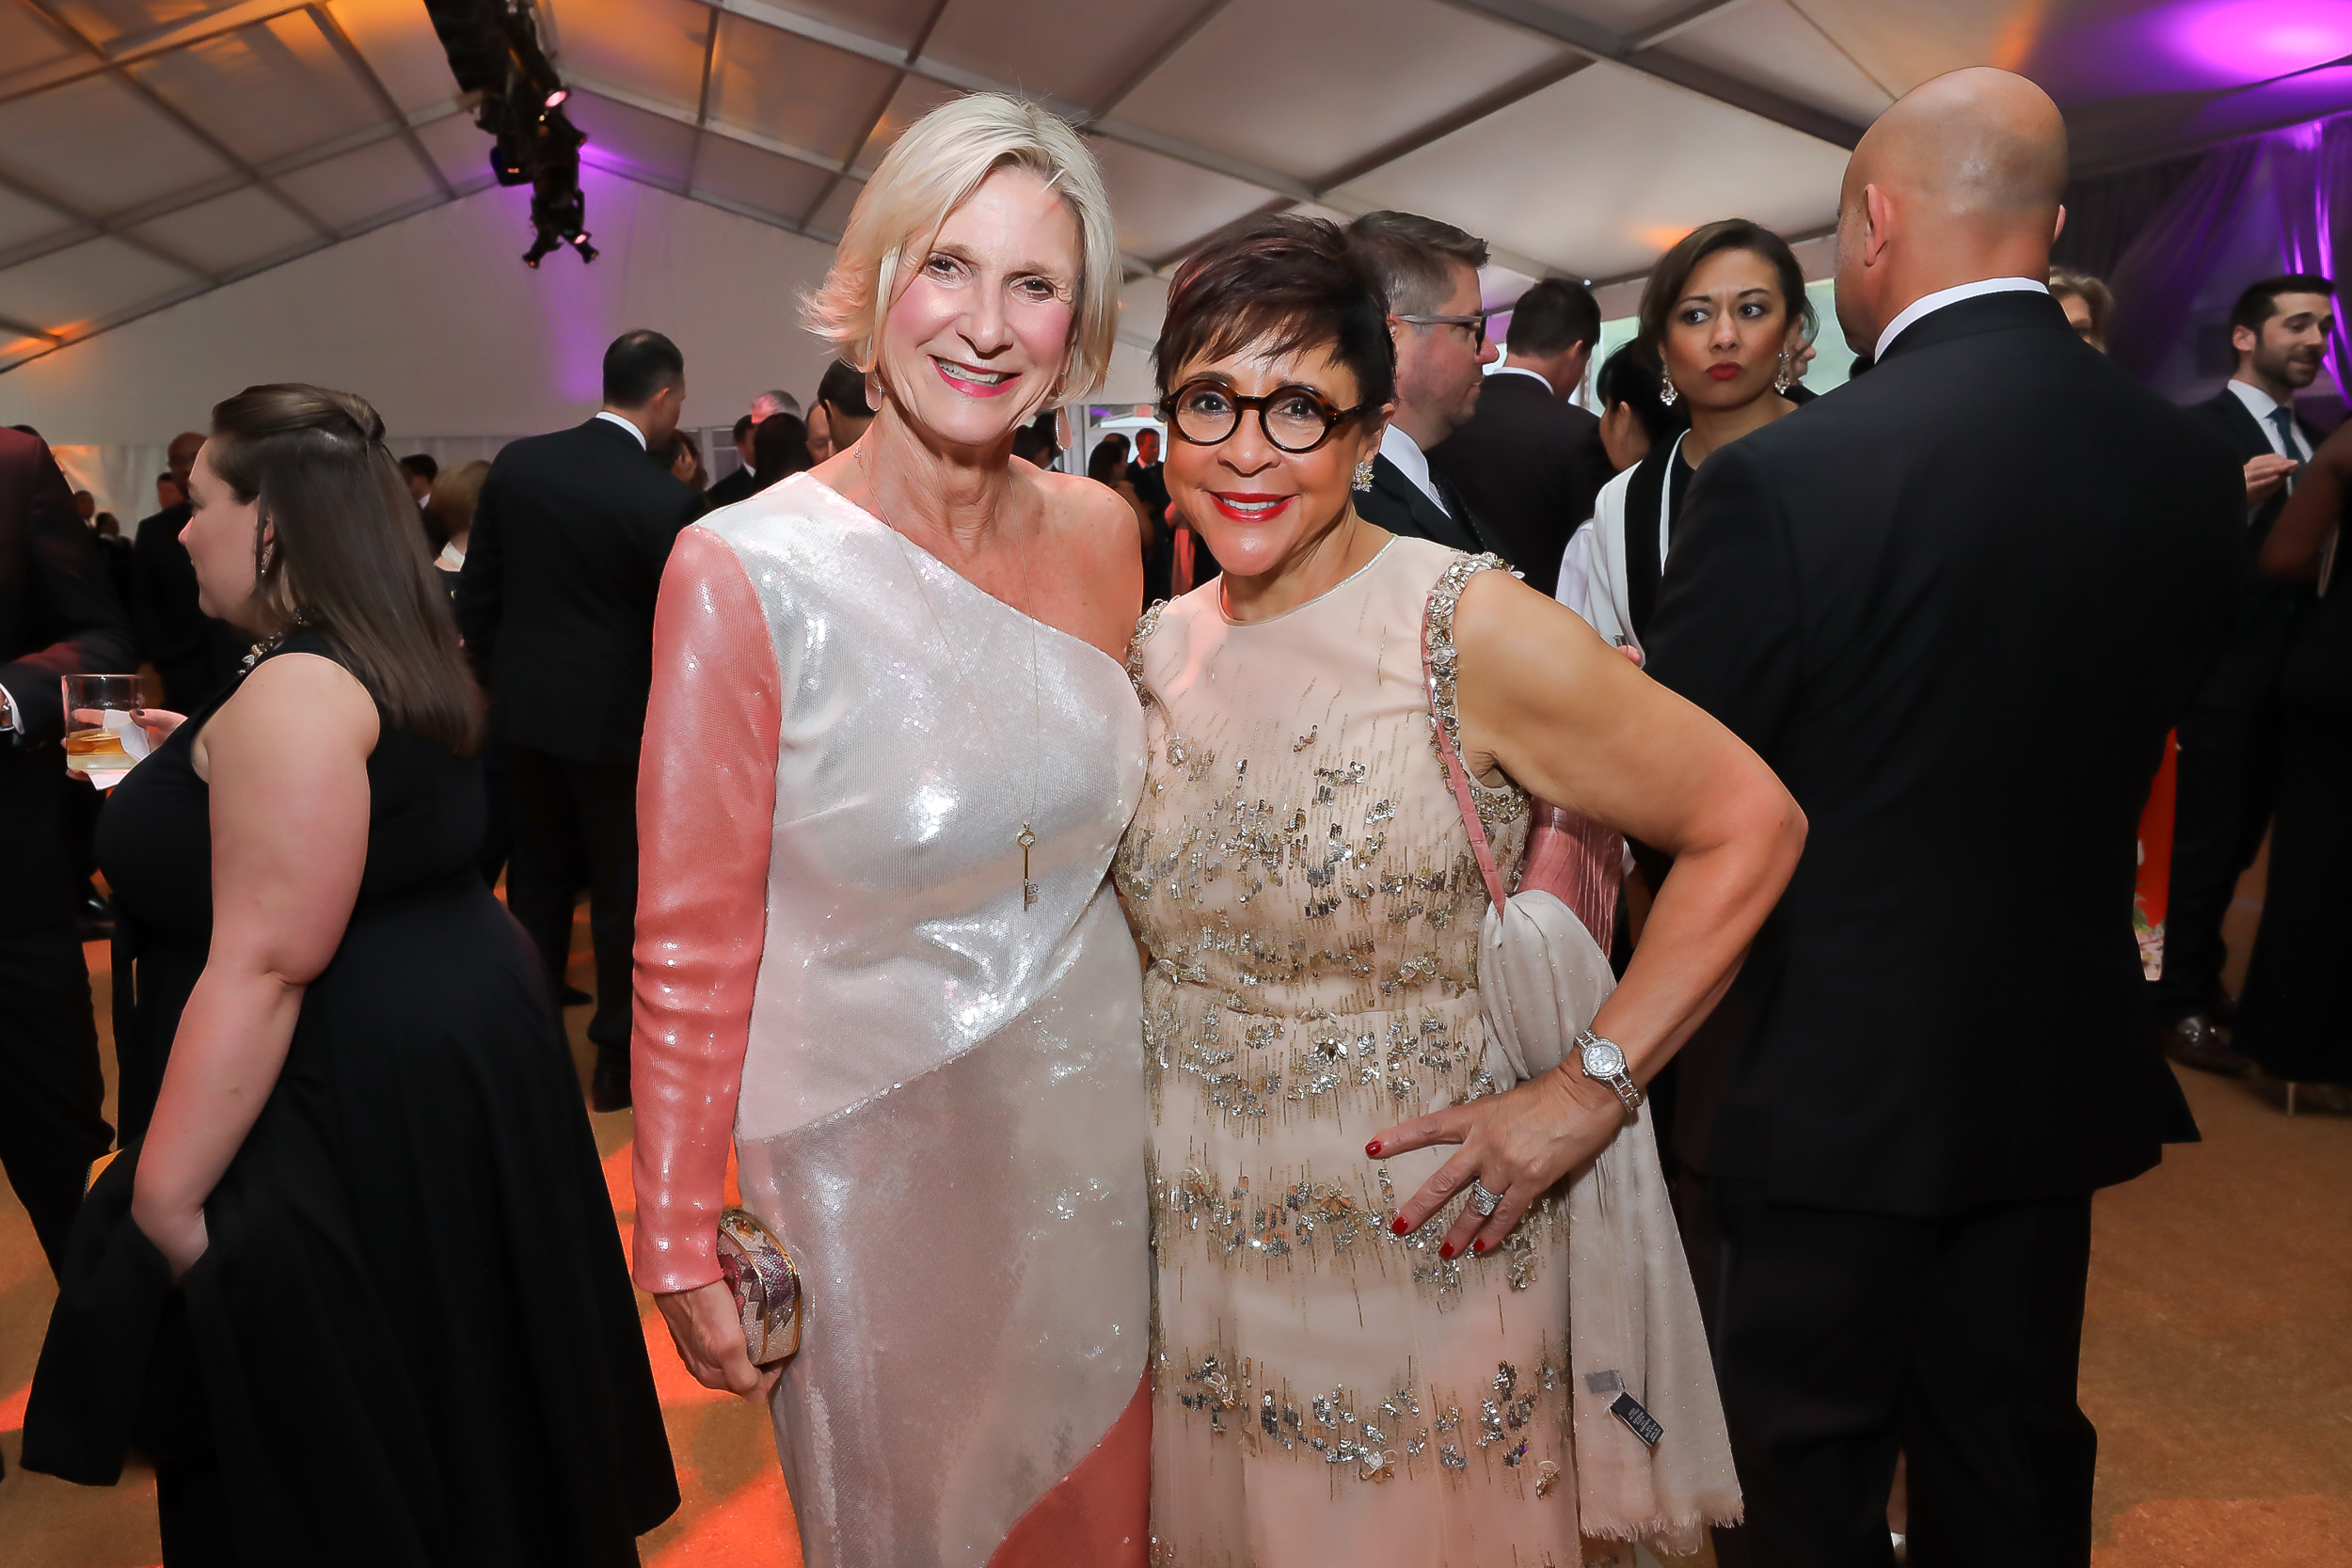 Sally Akridge and Sheila Johnson